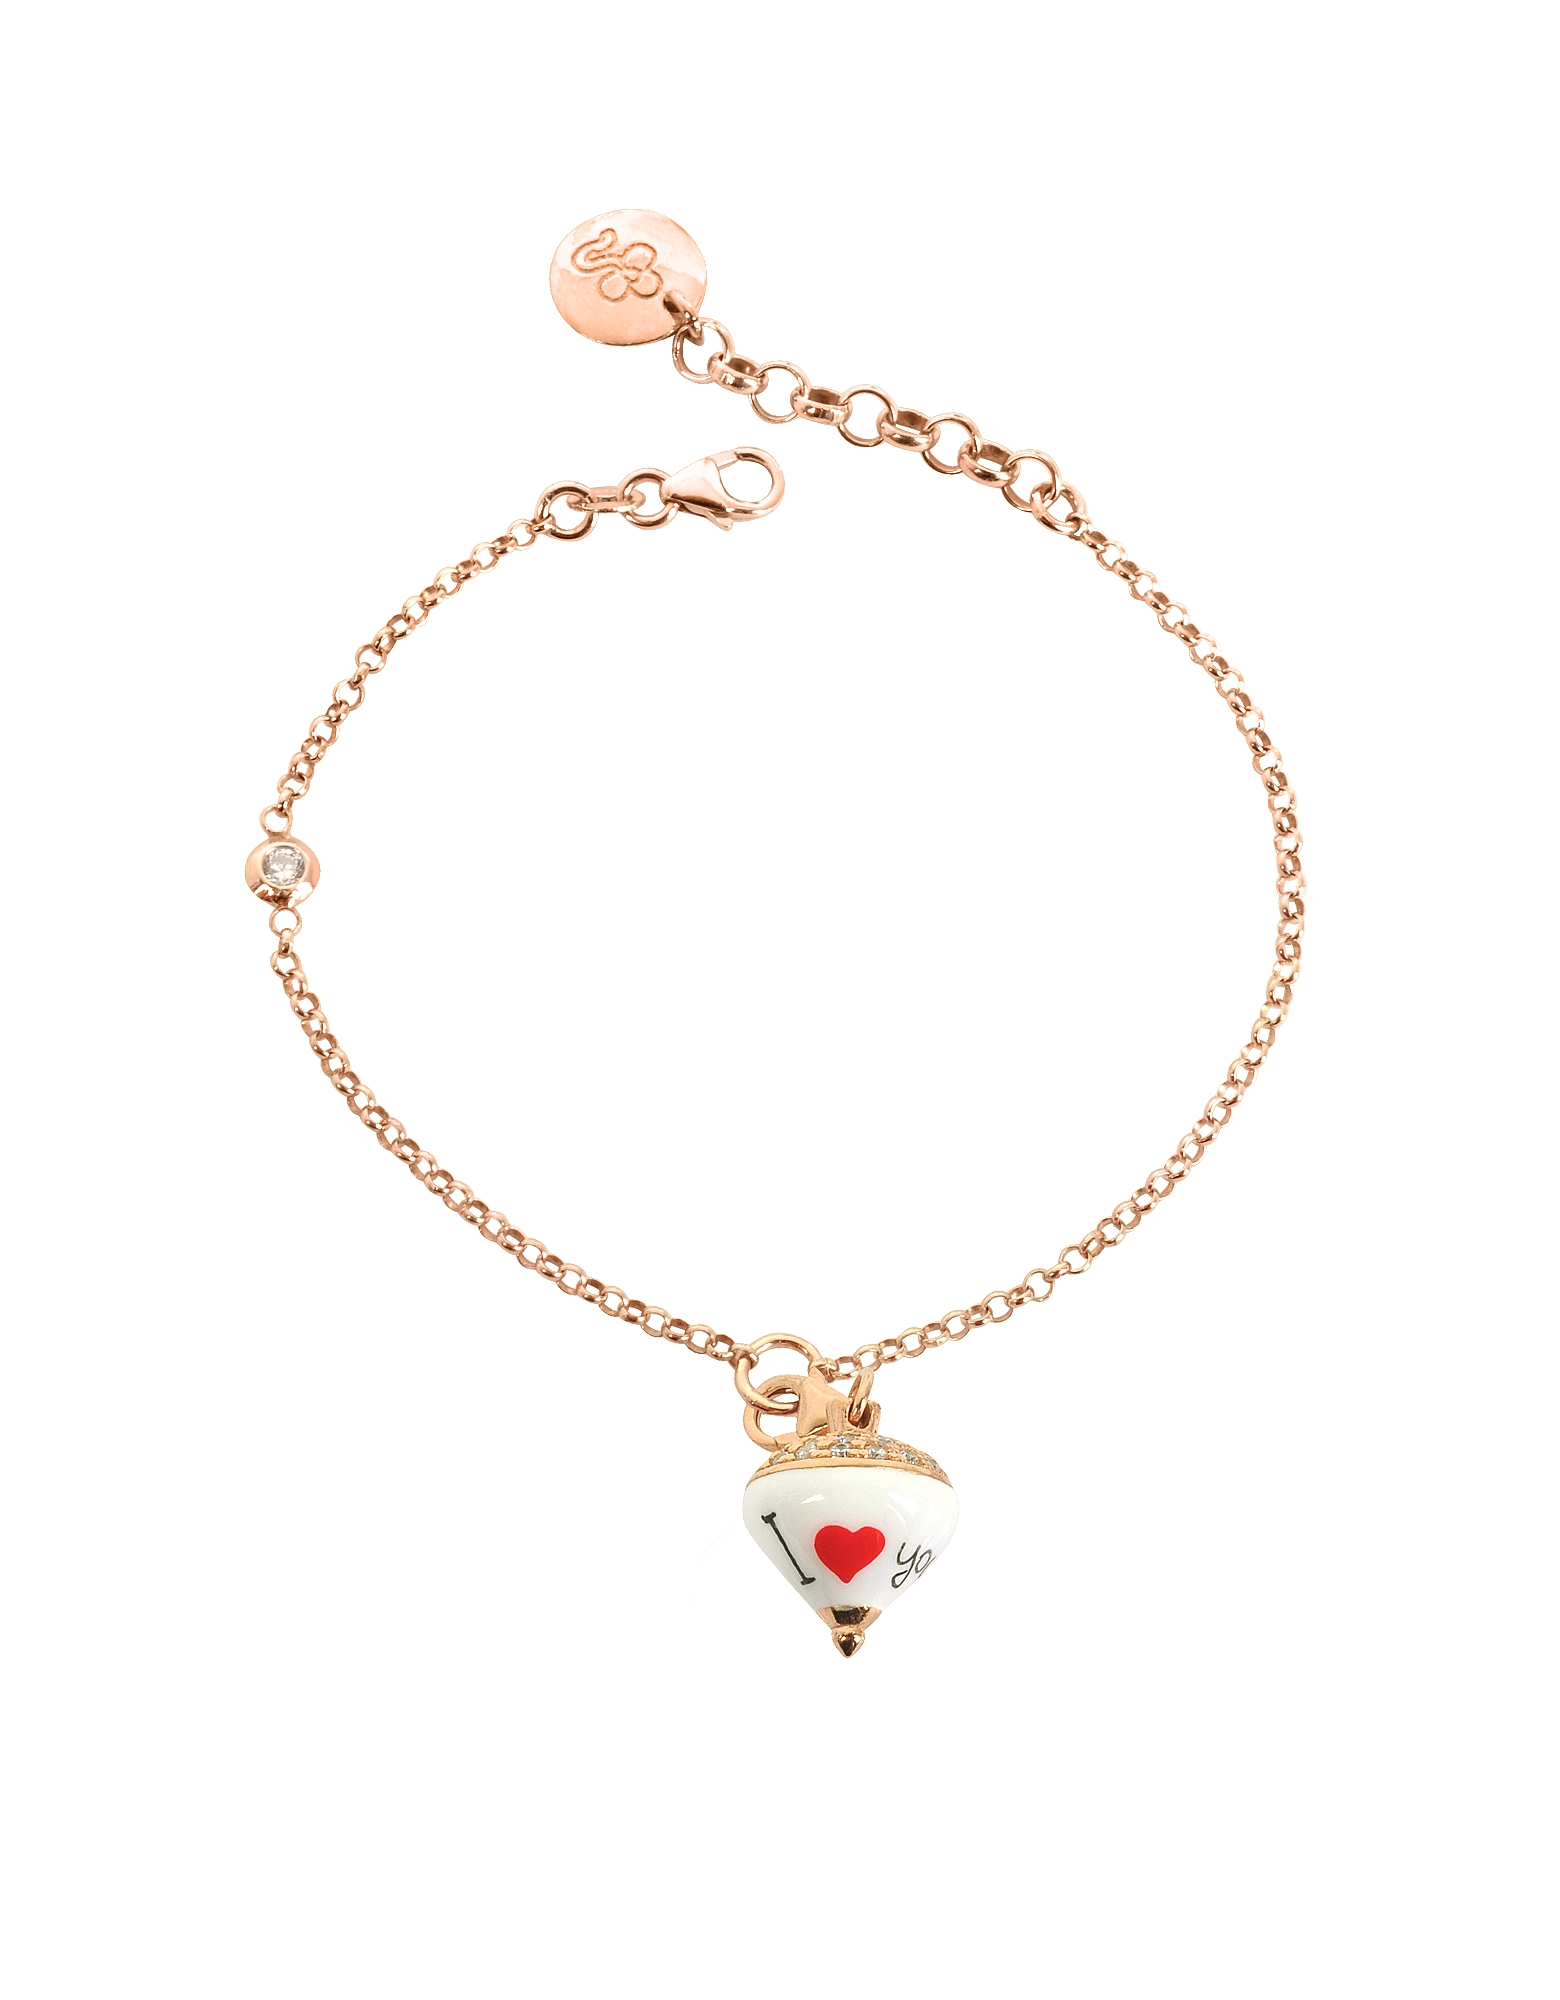 Azhar Designer Bracelets, Rose Sterling Silver and Enamel Small Spinning Top Charm Bracelet w/Cubic